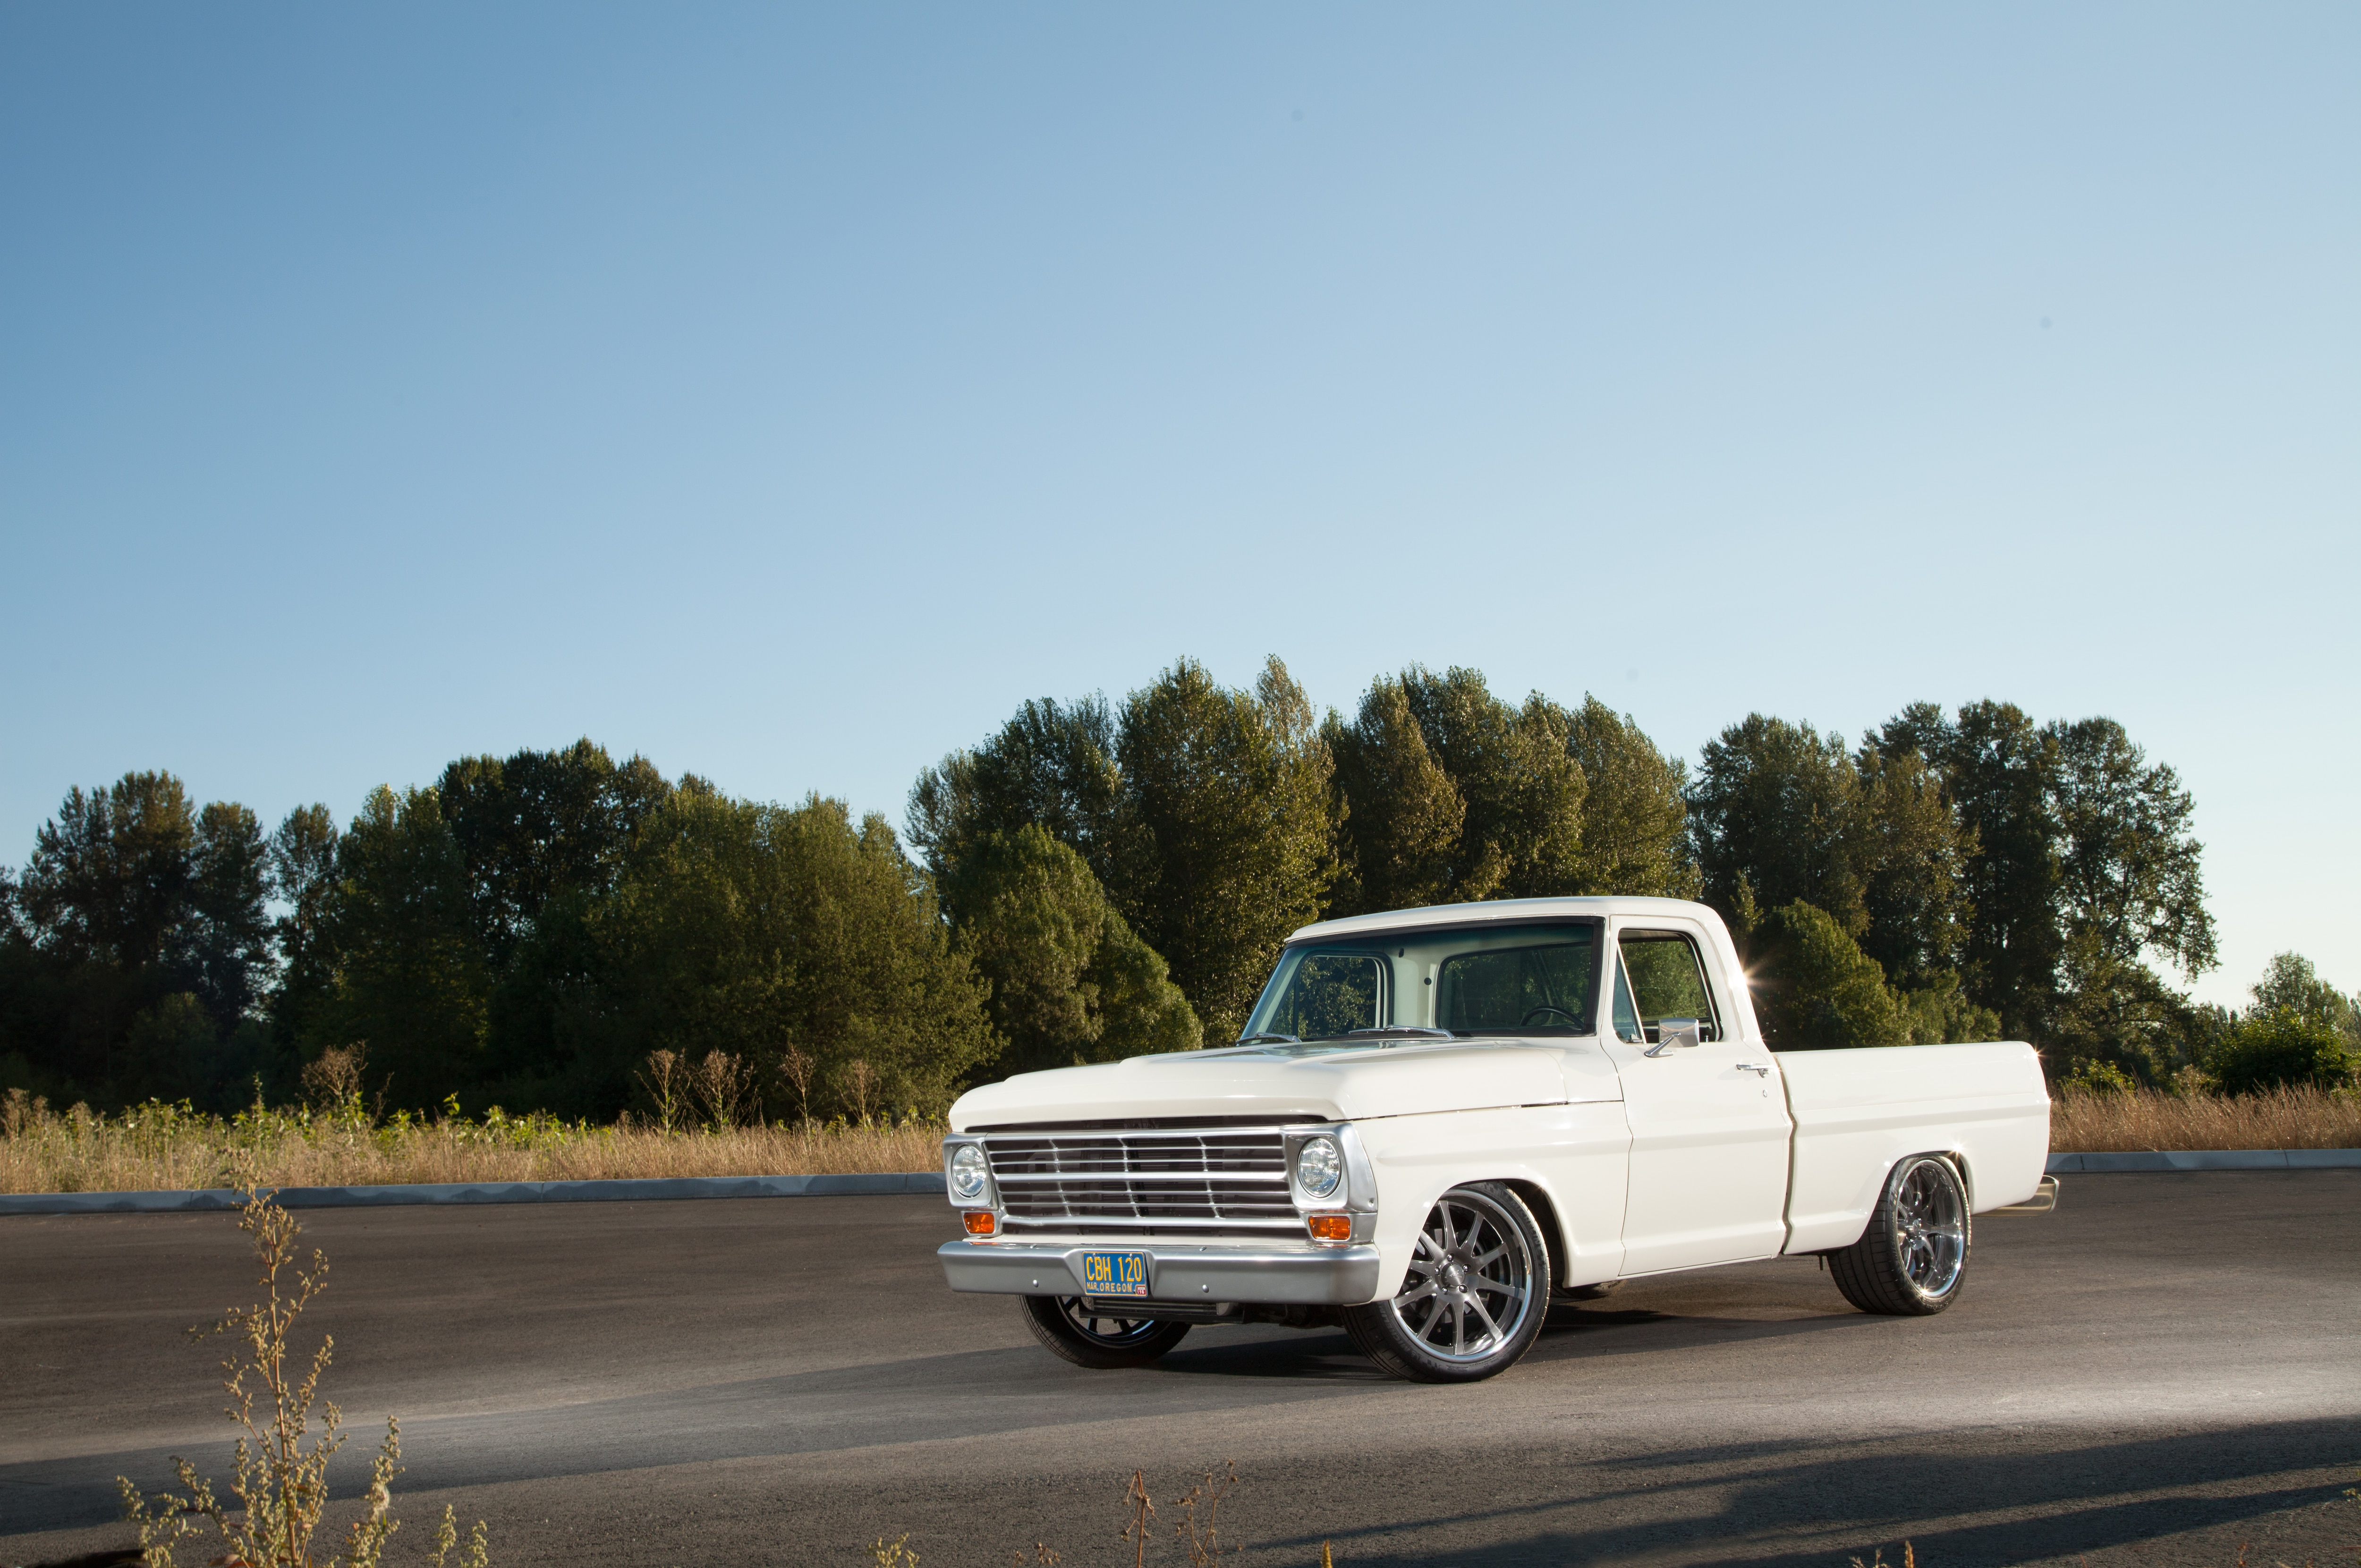 Lowered 1980 Ford Truck